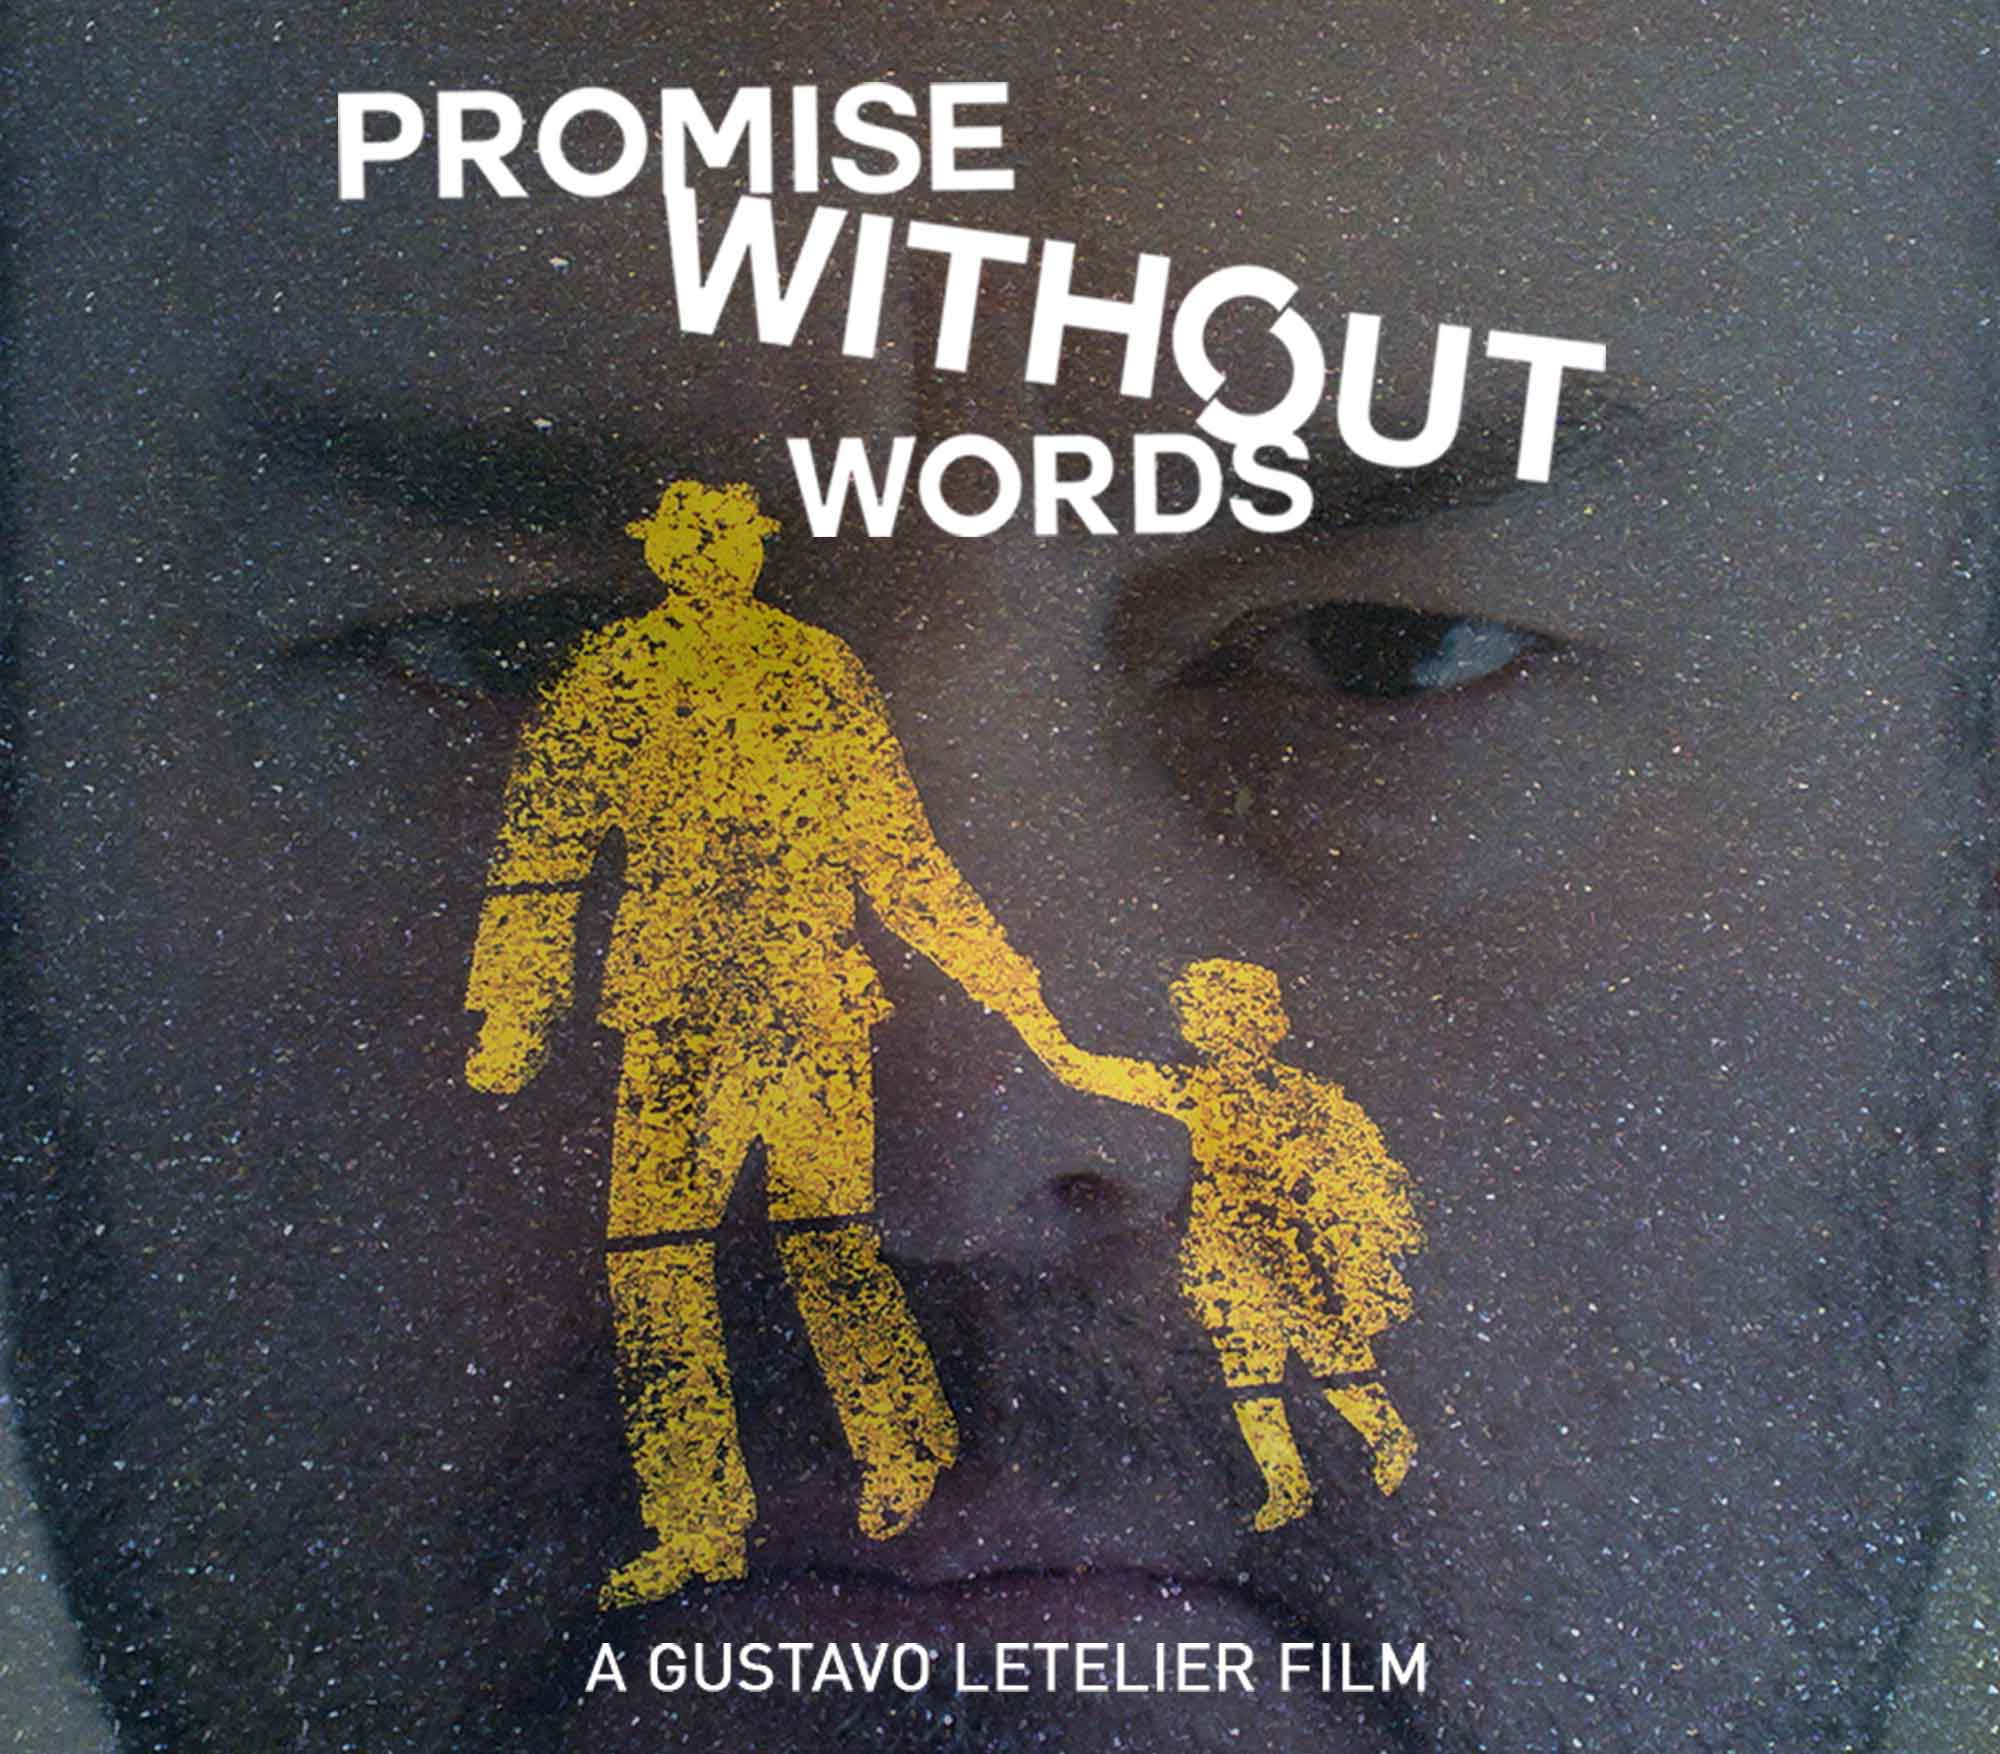 PROMISE WITHOUT WORDS FILM